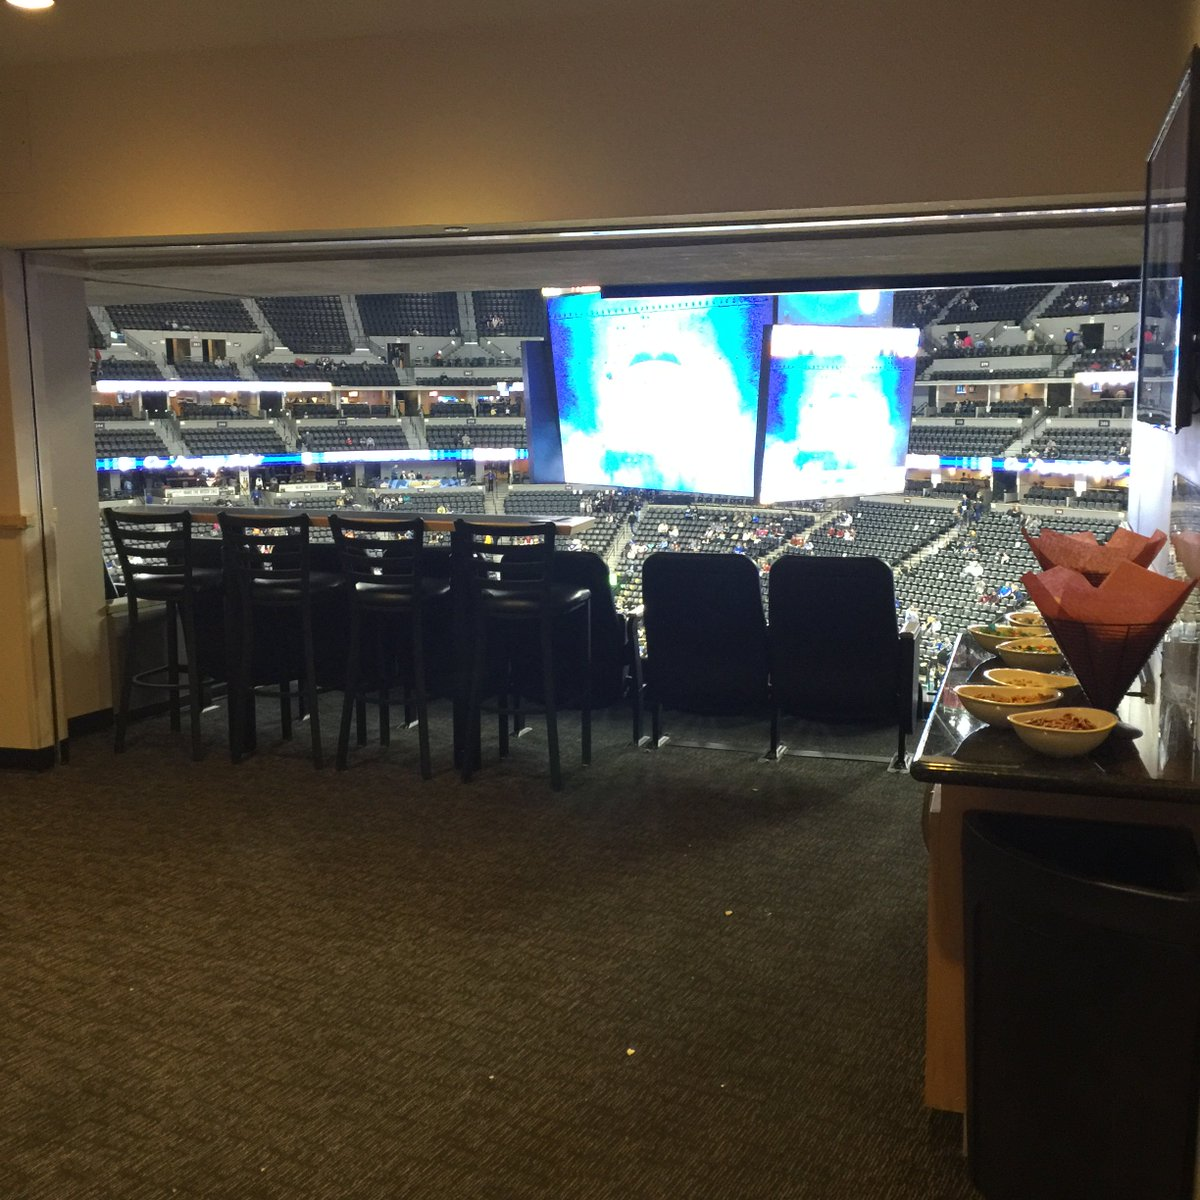 Interior View of a  Suite at the Pepsi Center, home of the Denver Nuggets and Colorado Avalanche